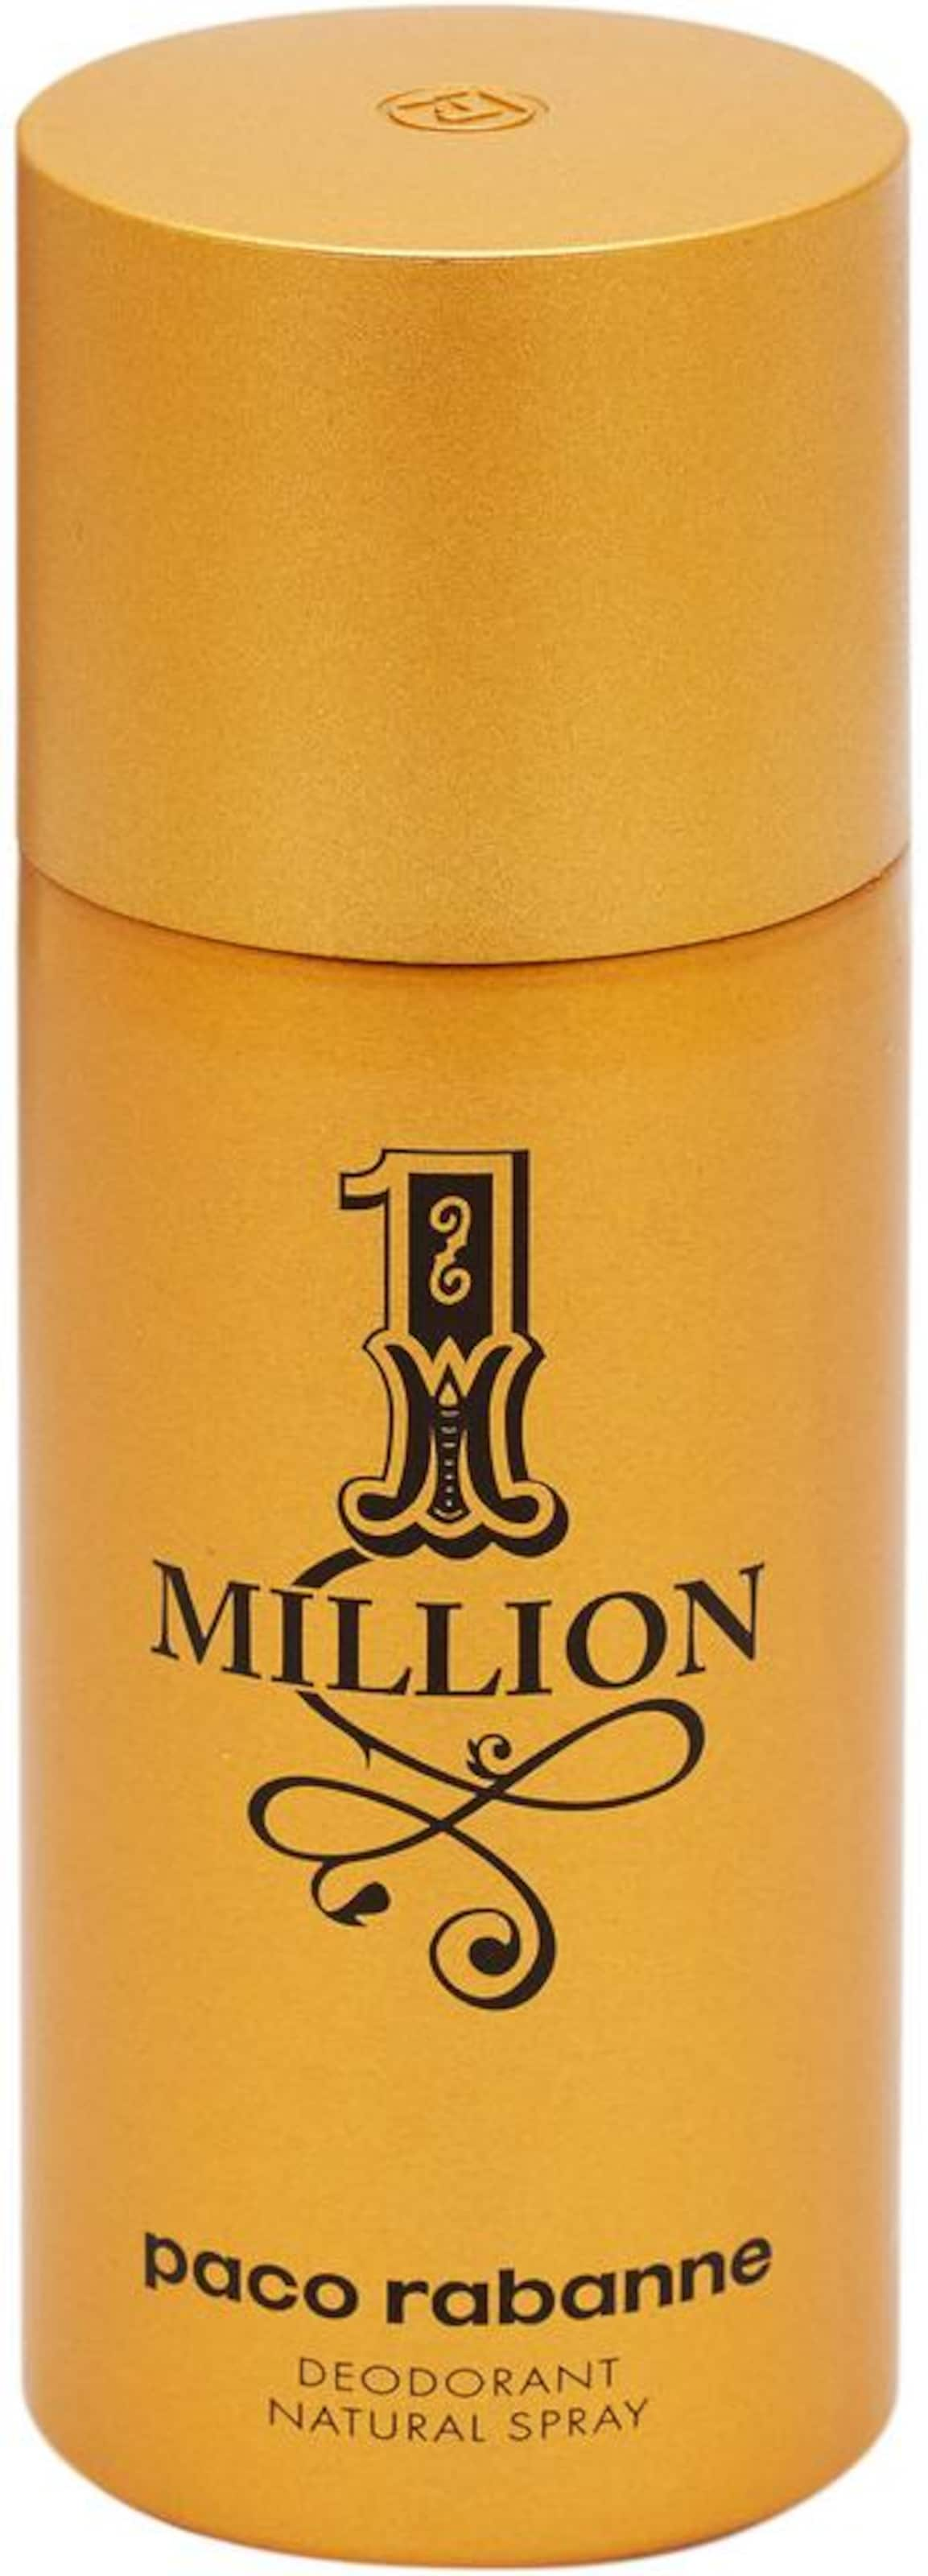 'one Million' GoldSchwarz Paco set In Rabanne Duft mNyv8wOn0